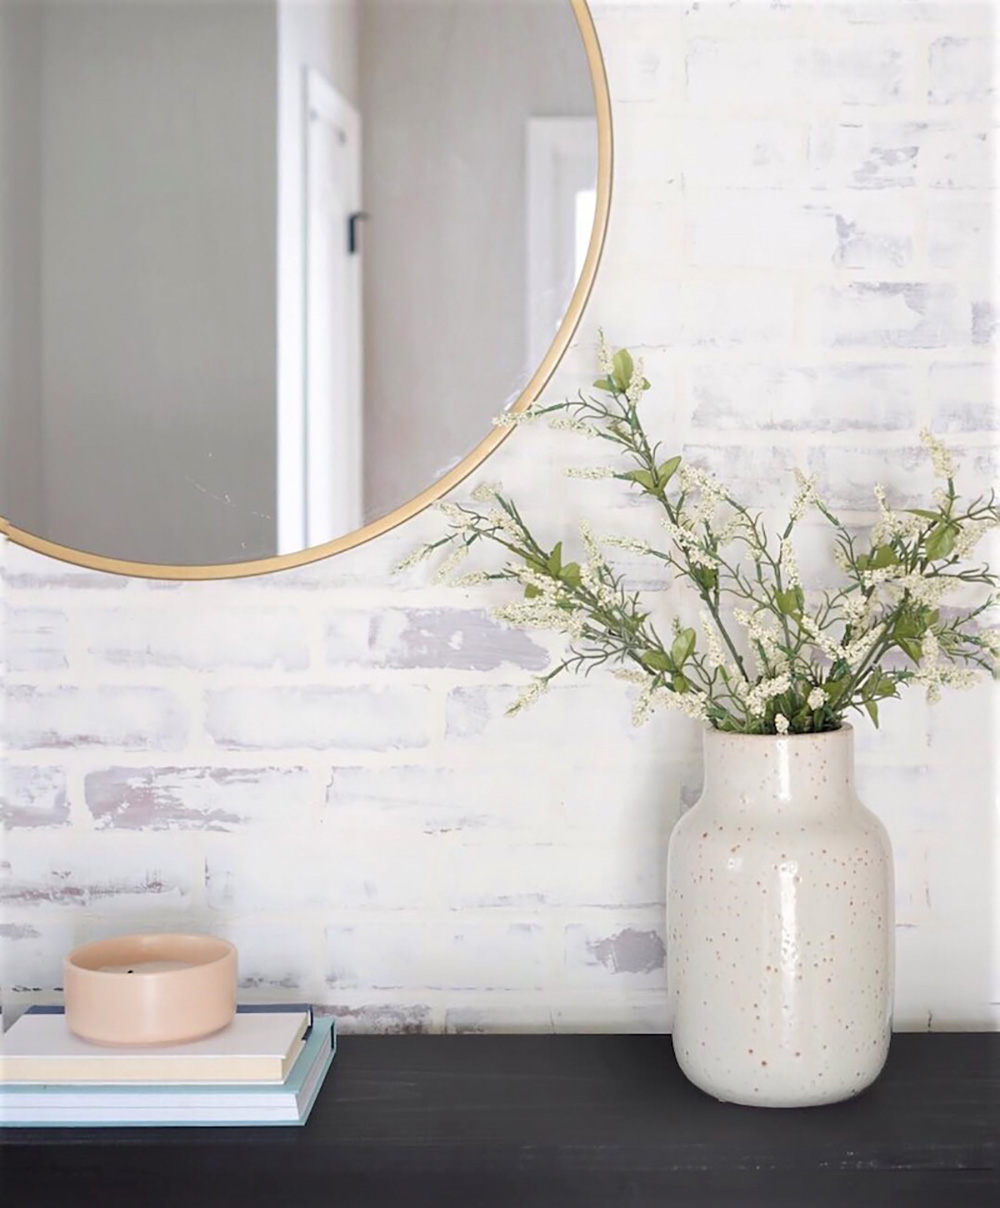 A decorative vase with greenery sits on a table in front of a faux whitewashed brick accent wall.